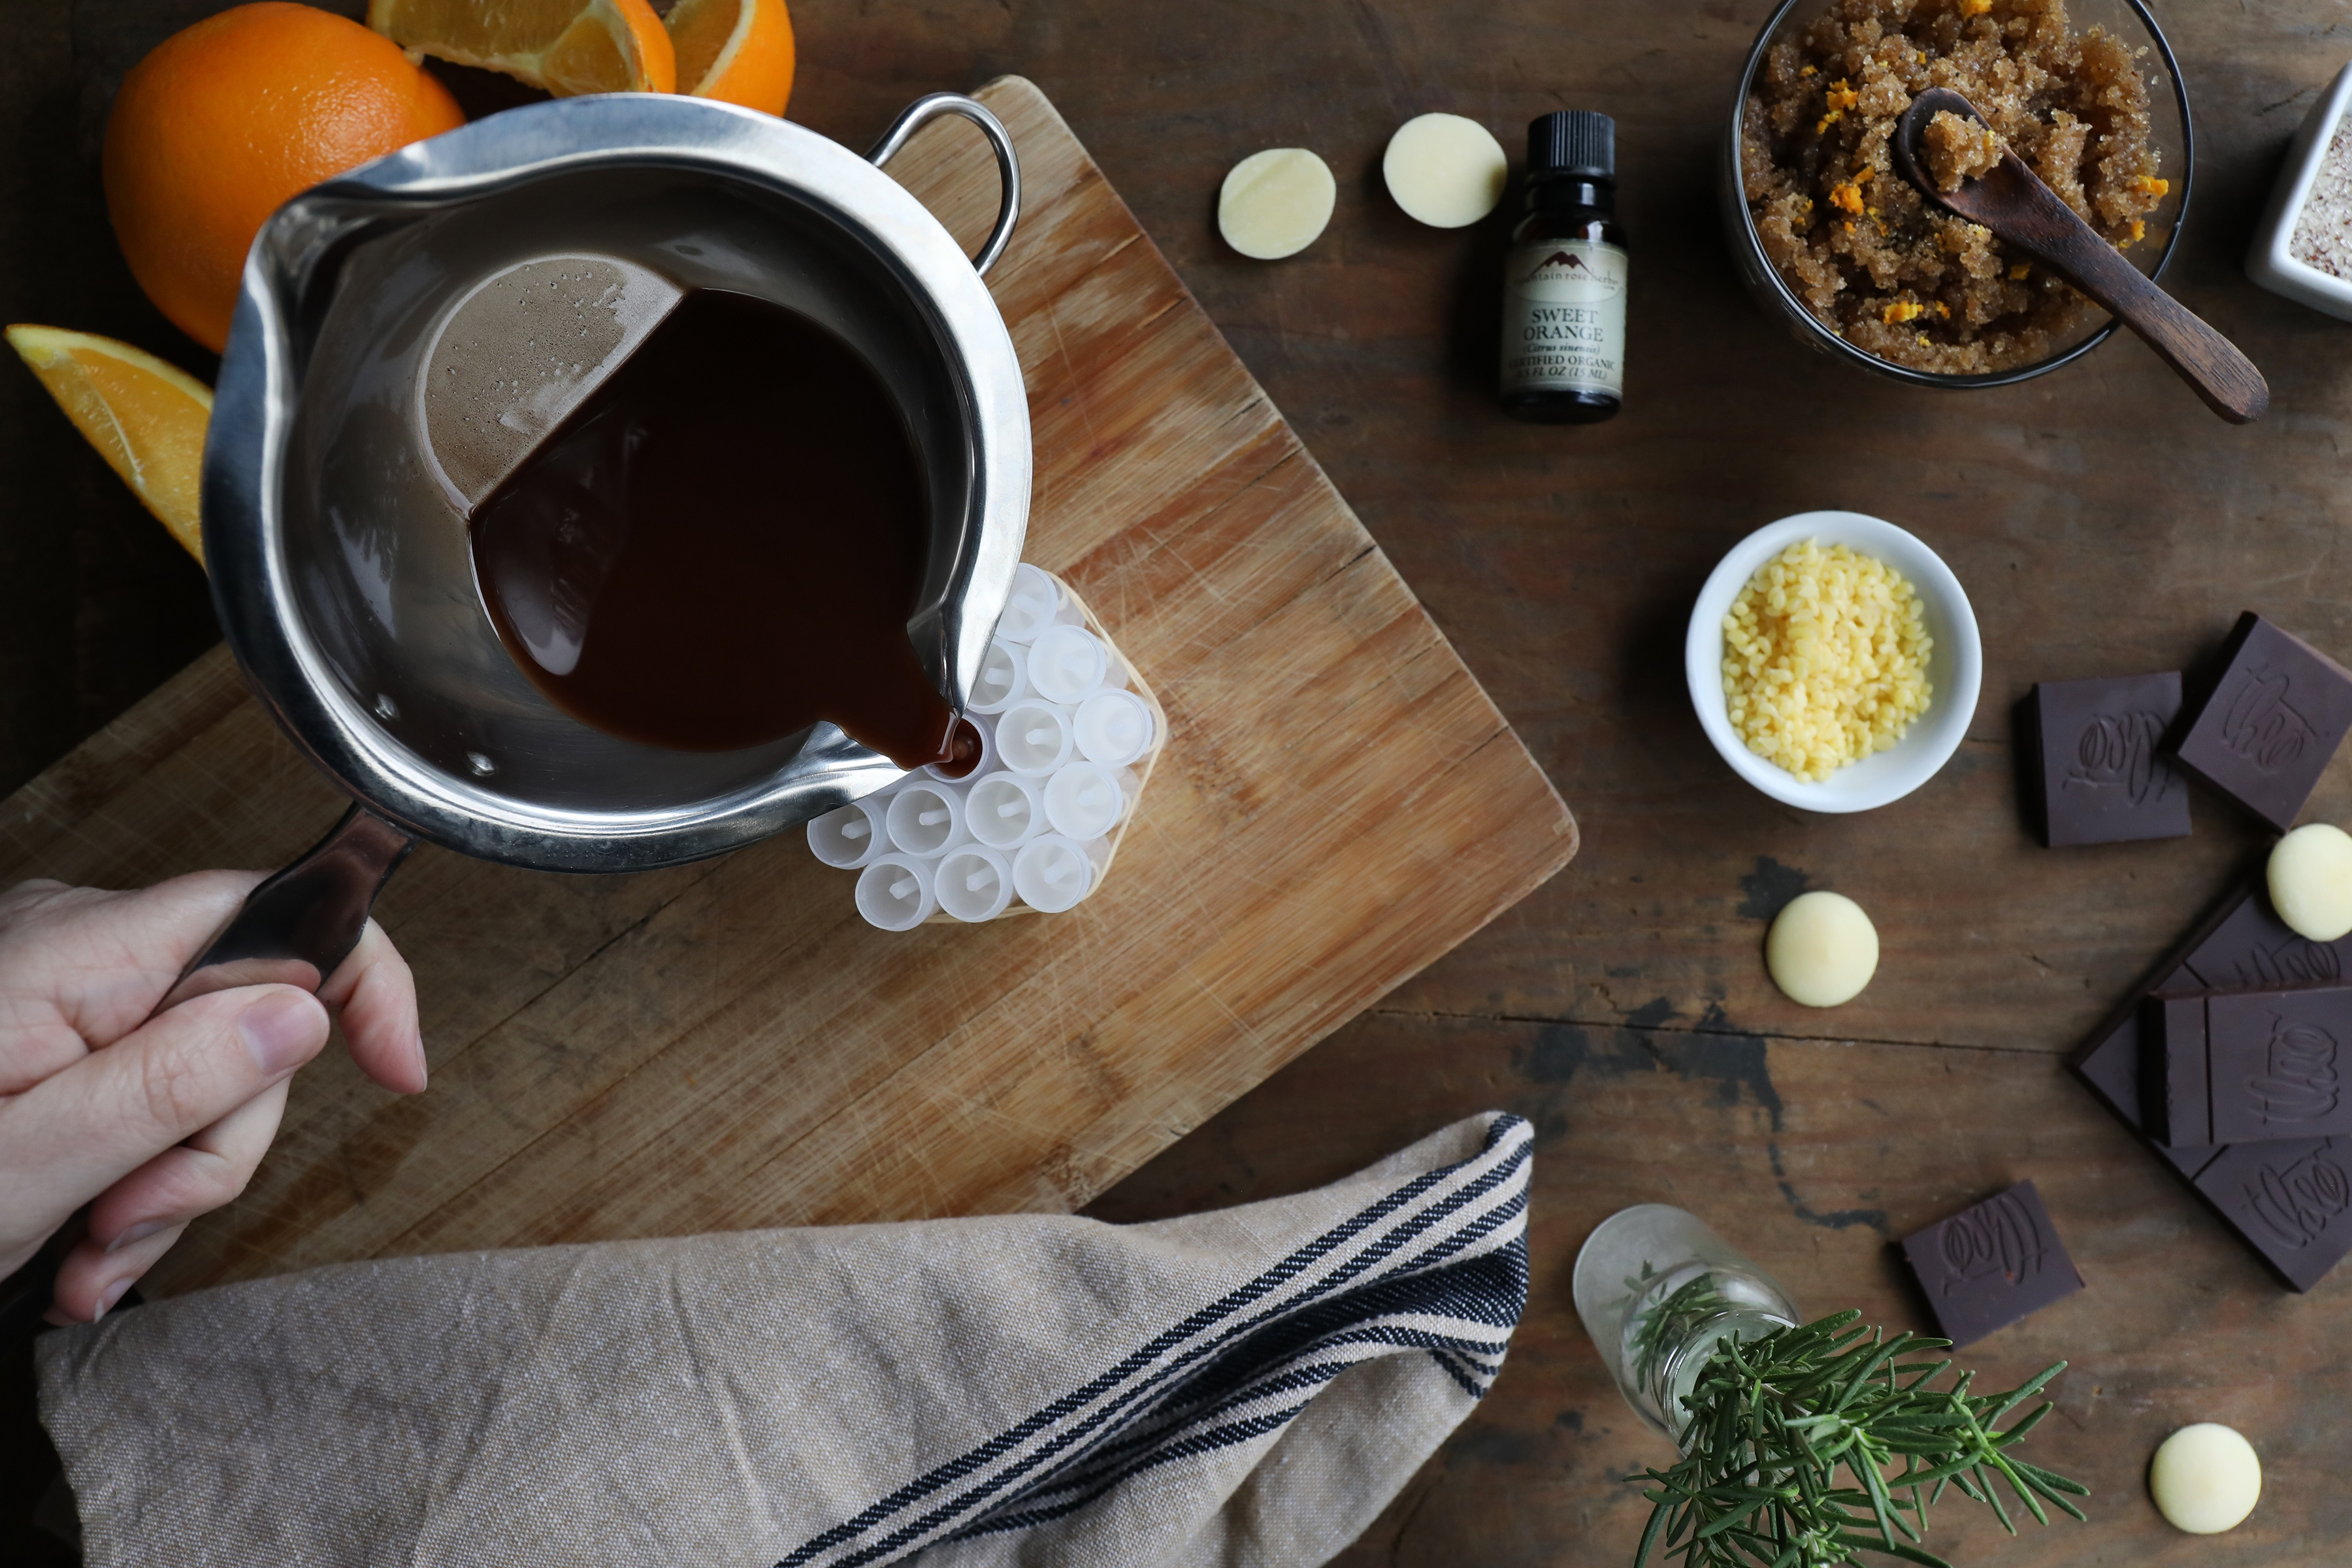 Hand pouring dark colored liquid into lib balm tubes with fresh citrus and rosemary and other ingredients surround it.